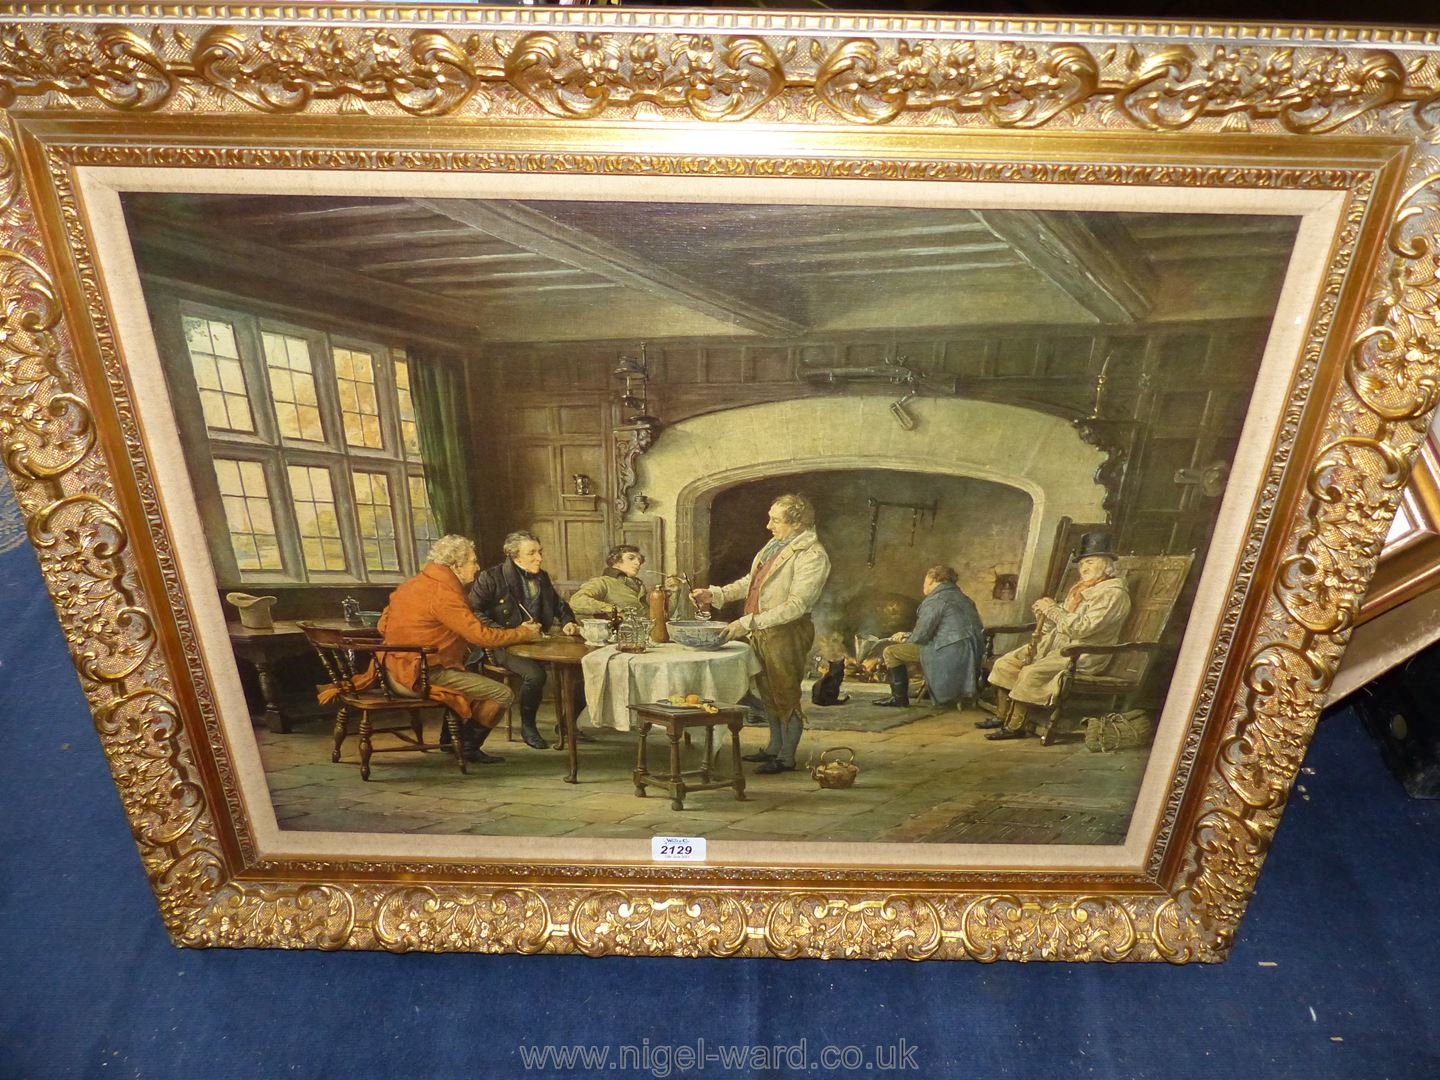 A large Print on canvas depicting gentlemen in an interior scene at a table with pipes, - Image 2 of 2